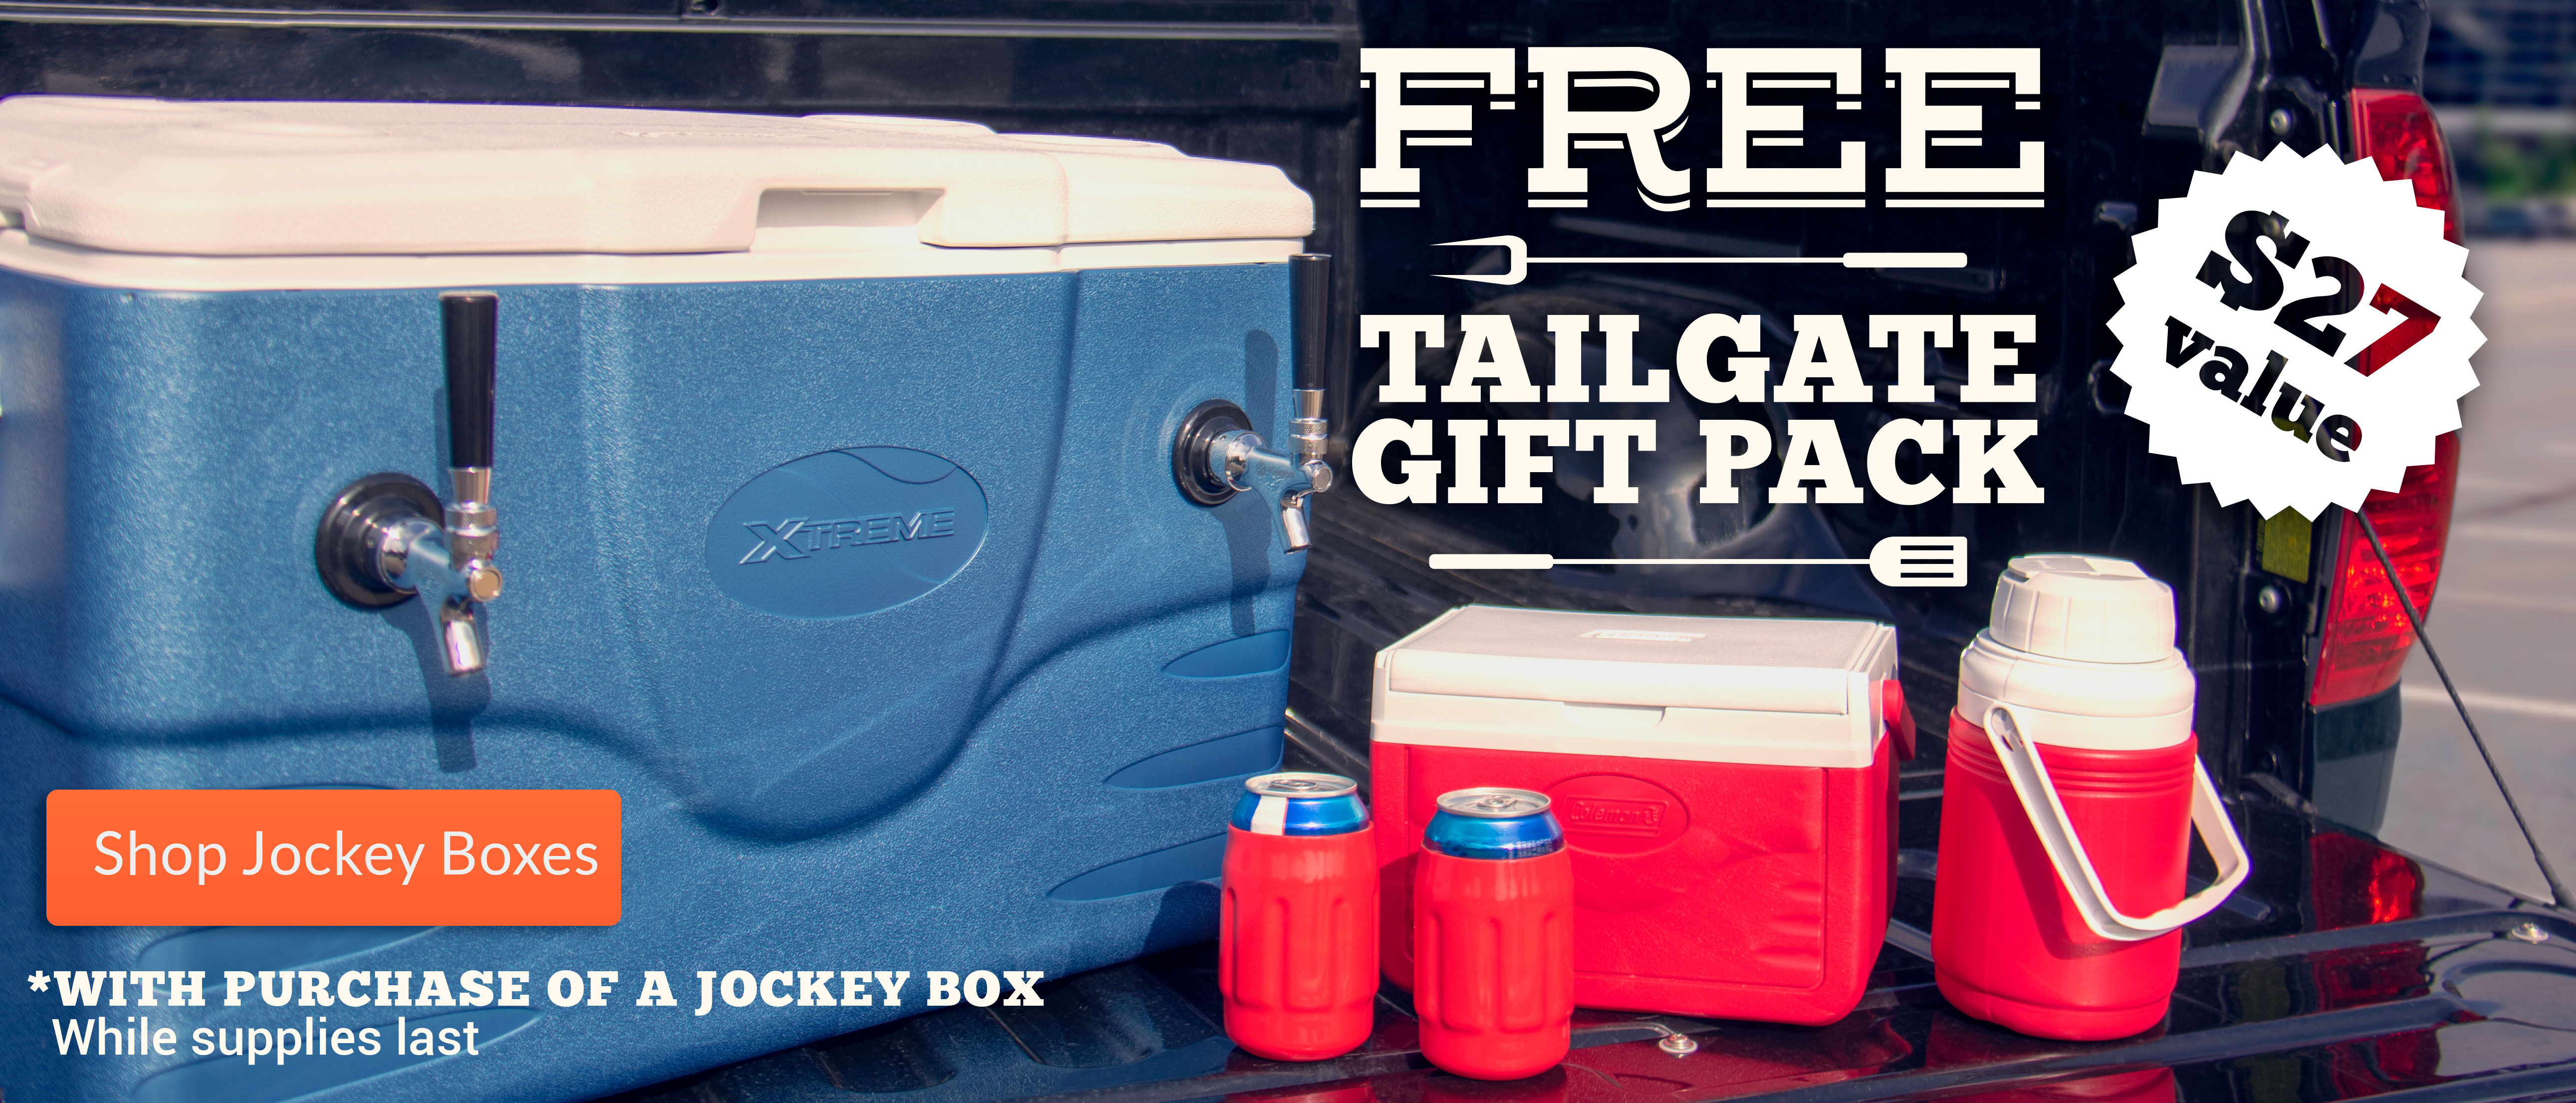 Free Tailgate Gift Pack